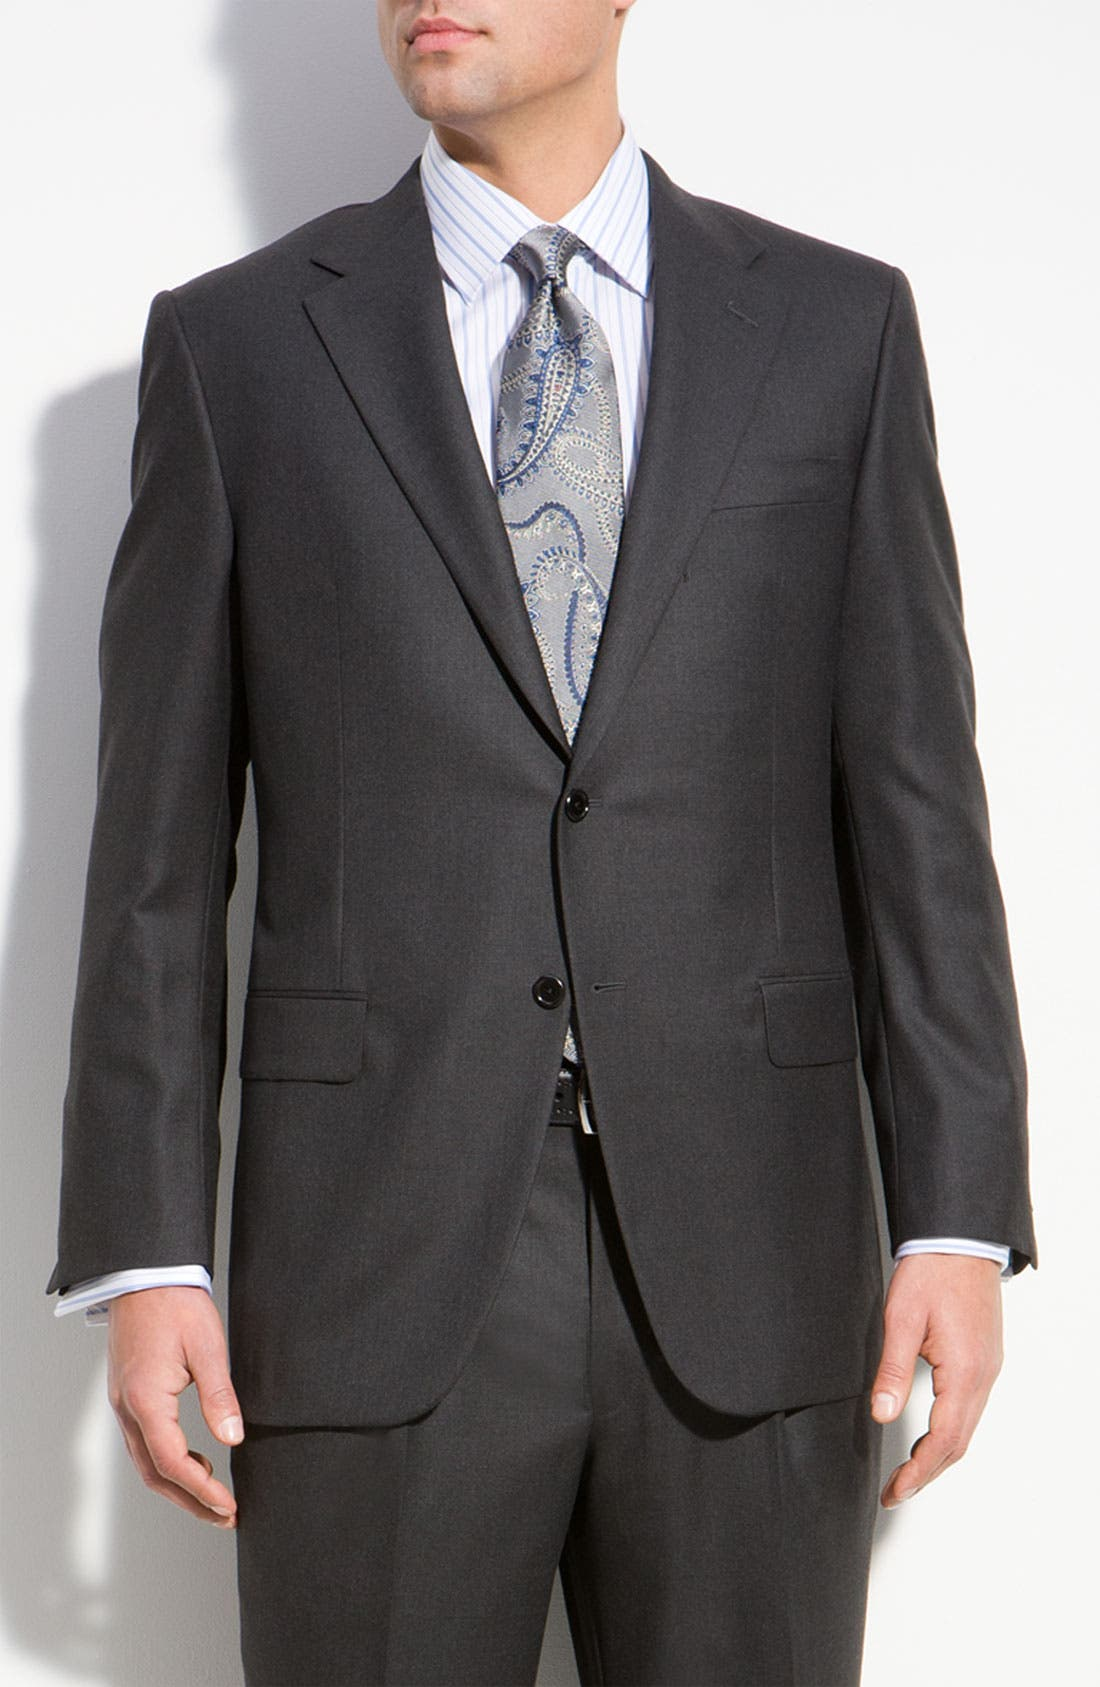 Alternate Image 1 Selected - Hickey Freeman A Fit Wool Suit